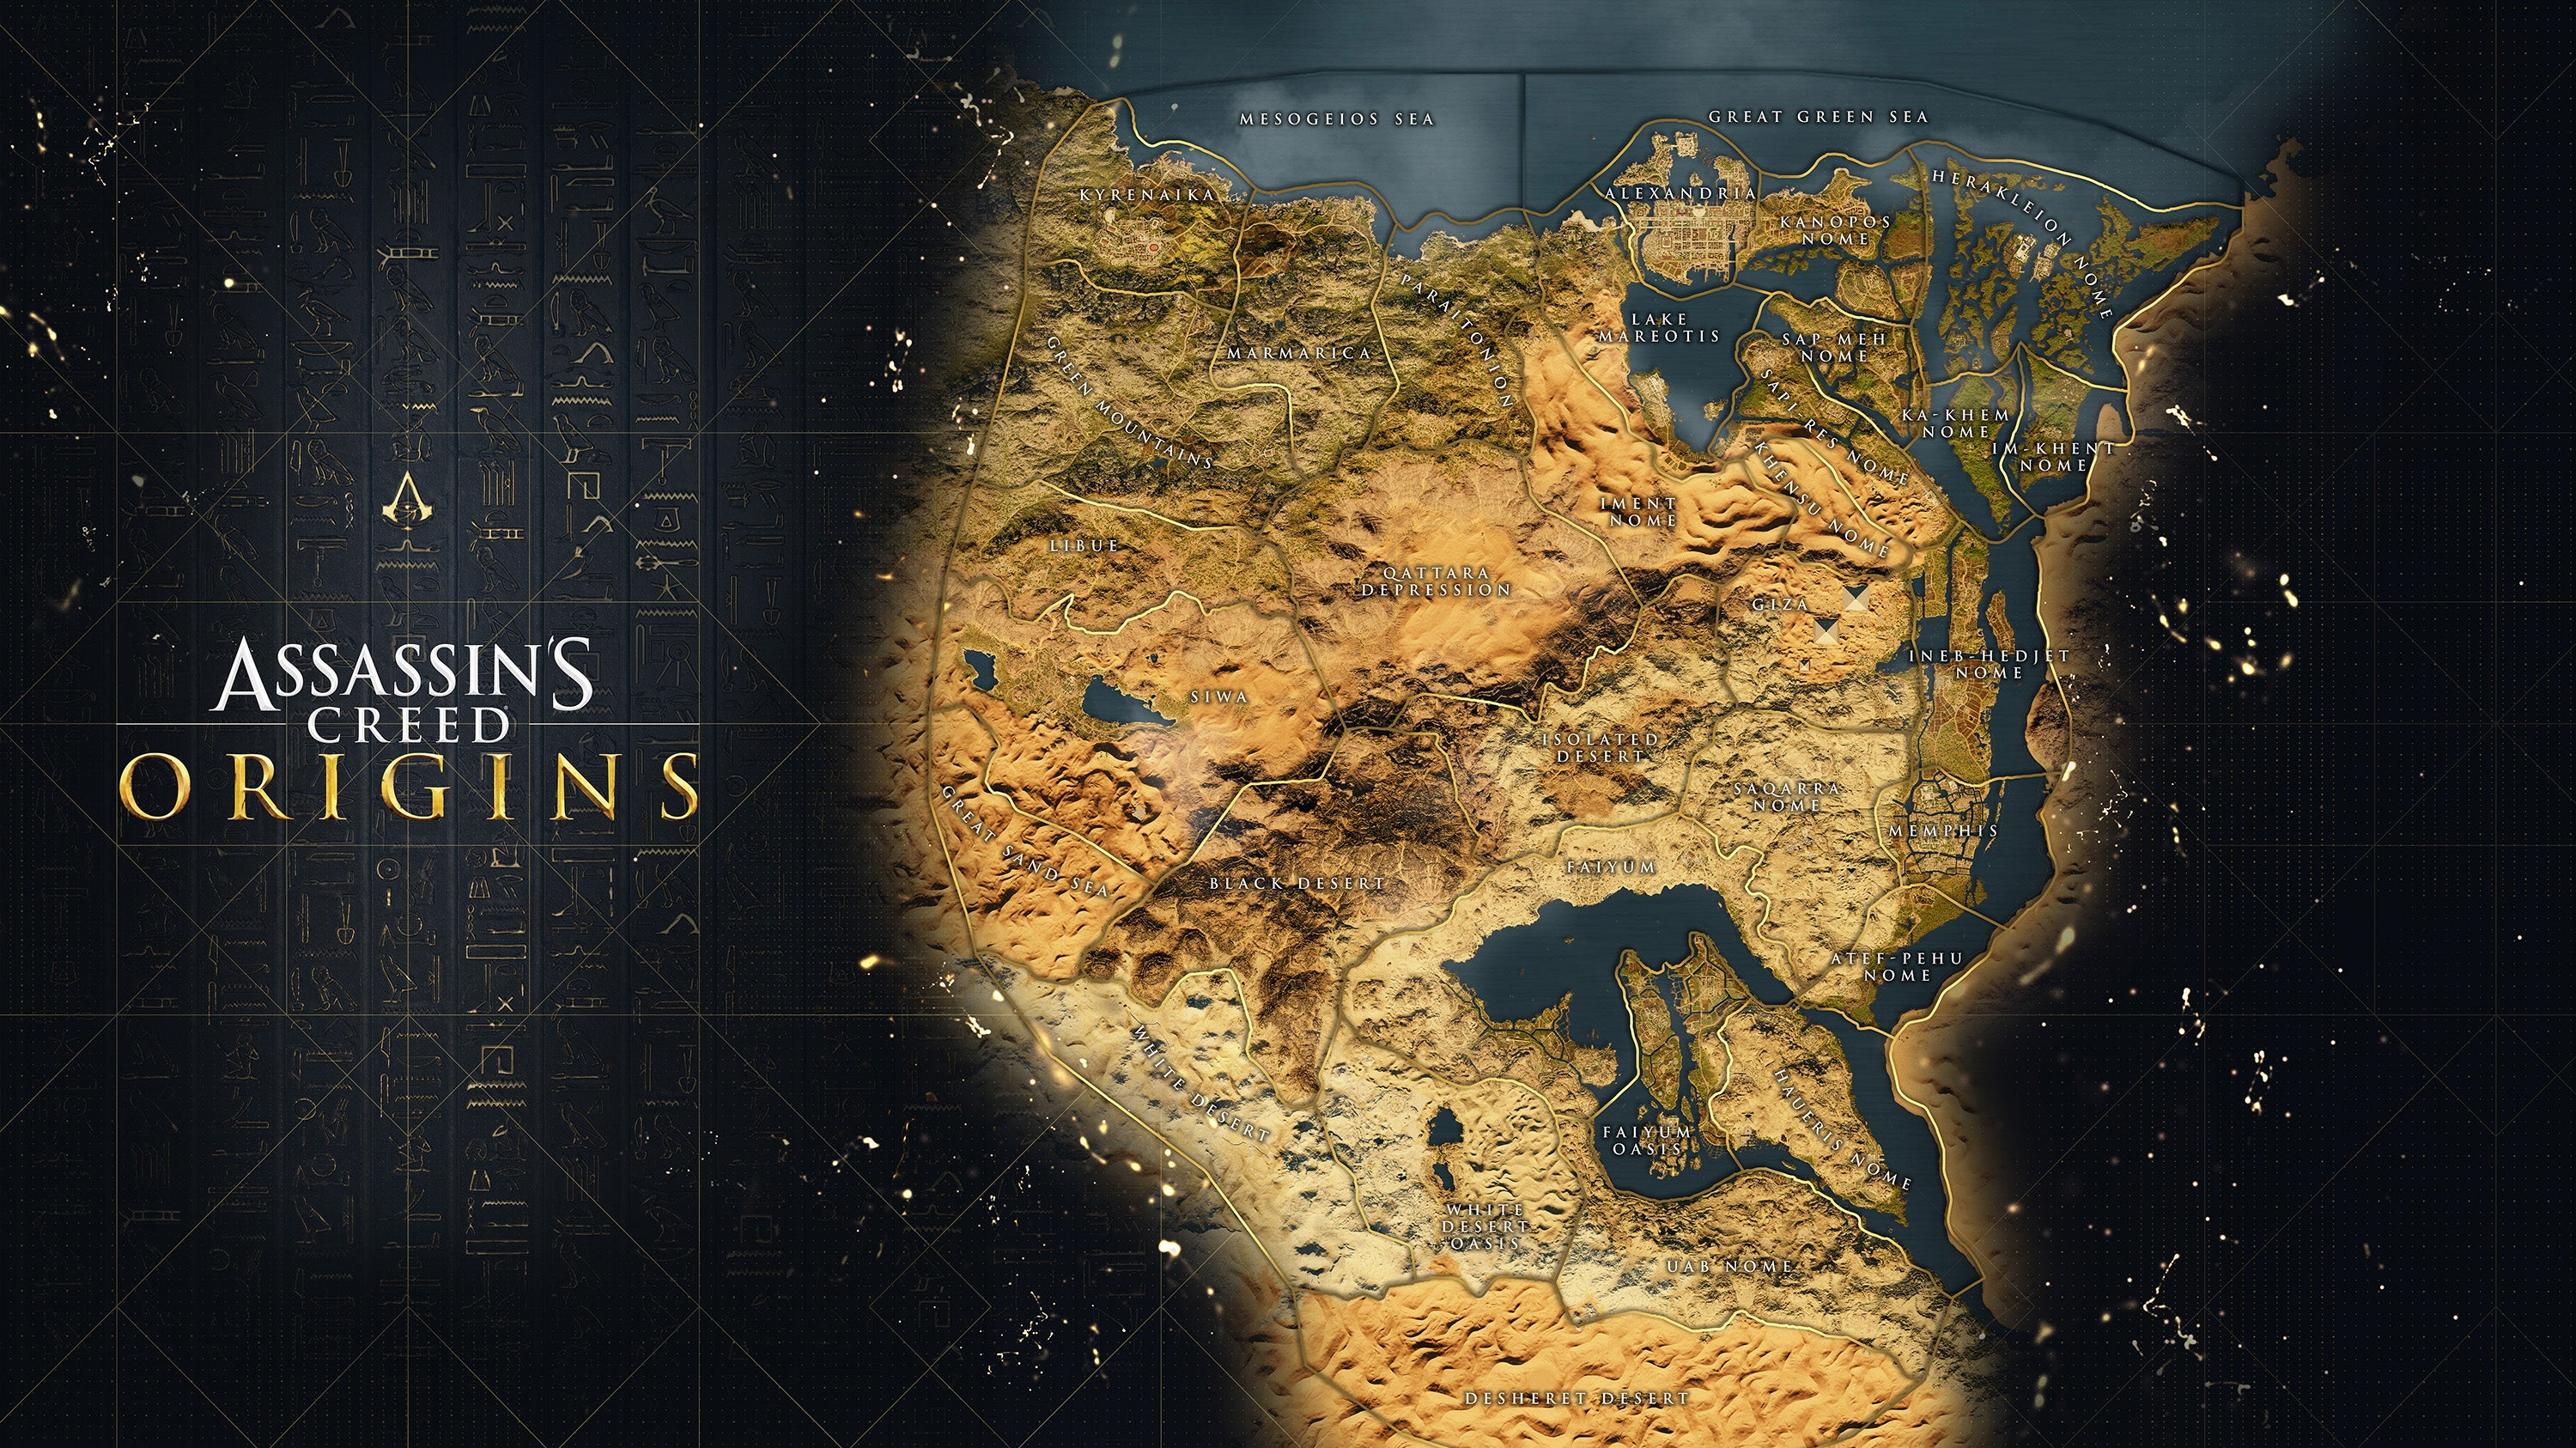 Assassins creed origins reveals its full map which dwarfs past click for full size image gumiabroncs